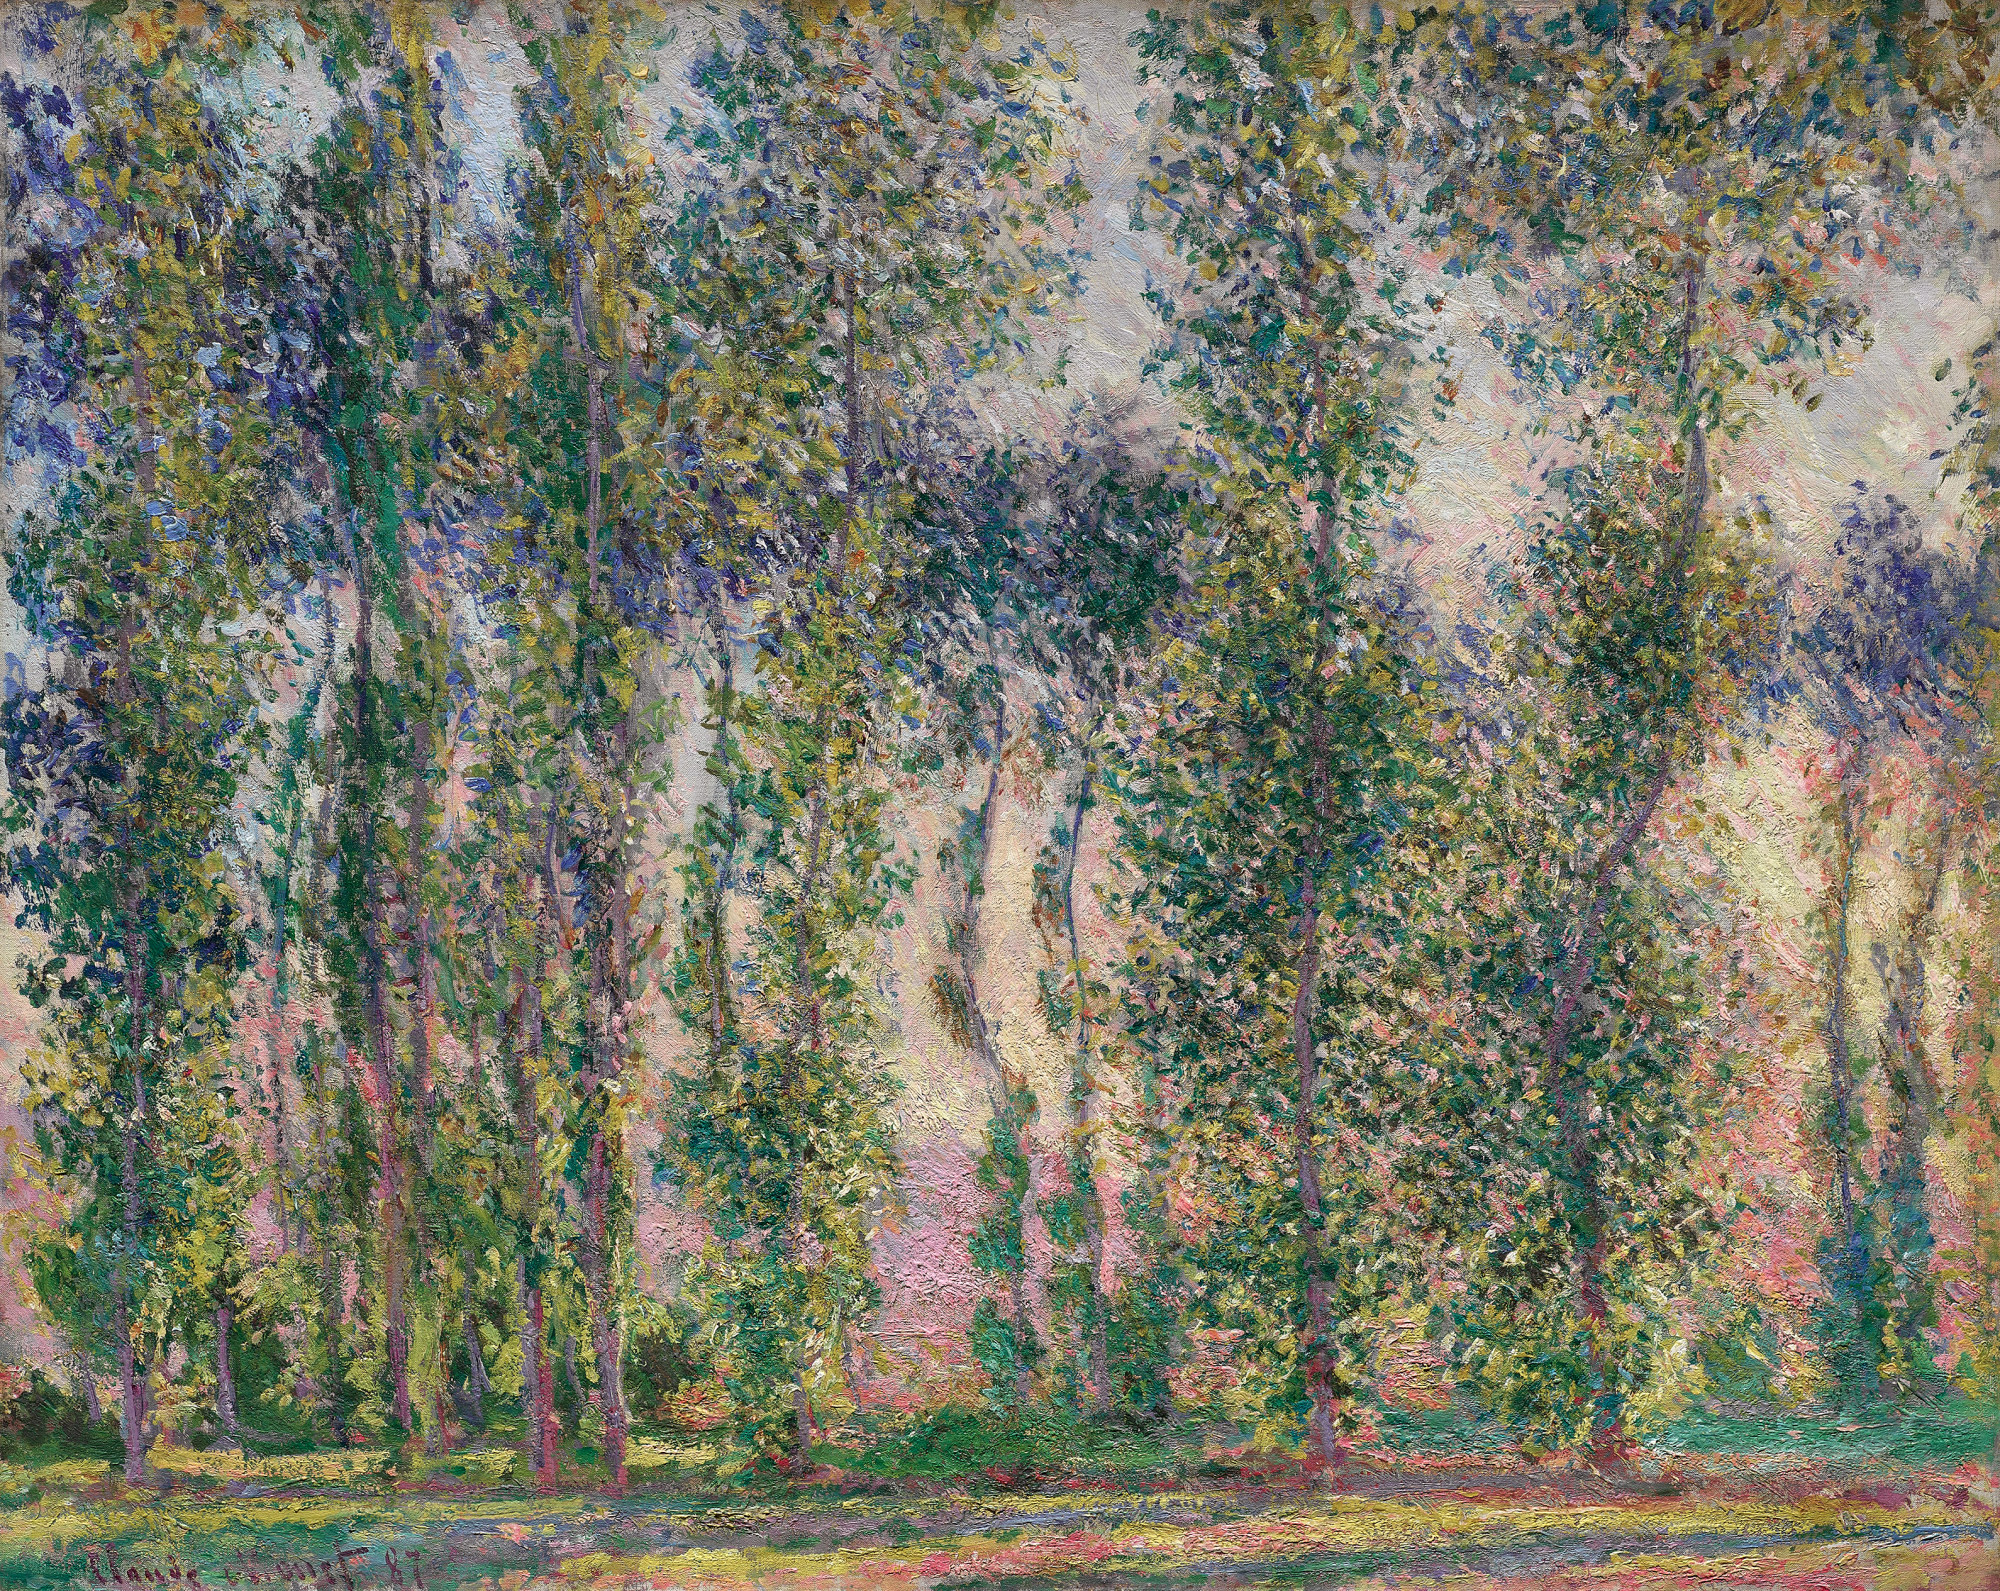 From spring to autumn 1891, Monet devoted himself to the treatment of a new subject, the only one he painted throughout this period: poplar trees. He produced a group of about 20 canvases depicting the trees planted on the edge of a marsh situated on the left bank of the Epte, two kilometres upstream from Giverny. The site had been put up for sale during the summer, and the plan was to cut down these trees. After the mayor had refused to grant a reprieve, Monet found himself forced to pay a sum of money to the timber merchant to stop the trees being felled before he had finished the series. Having set up in a boat, he made the most of the perspective effect offered by the line of poplars, which followed the winding course of the river upstream, forming a kind of large 'S'. He was then able to form decorative compositions that were built around curved lines and counterbalanced by the verticals of the trunks. Monet painted several sub-series, reproducing the trees face-on and reflected in the river, but sometimes he reduced the motif to the simple vertical line of the trunks. With this new series, the painter repeated the approach he had undertaken the previous year with the Meules. The titles echo those he had chosen for that first series. The aim was identical in both cases: to depict the variations in light and seasons. The 'instantaneity' of these paintings is meant to convey the impression one feels when encountering the subject at a precise moment. The poplars series was the first to be exhibited without any other painting, as a complete entity in itself, when it was shown in the Durand-Ruel gallery in 1892.